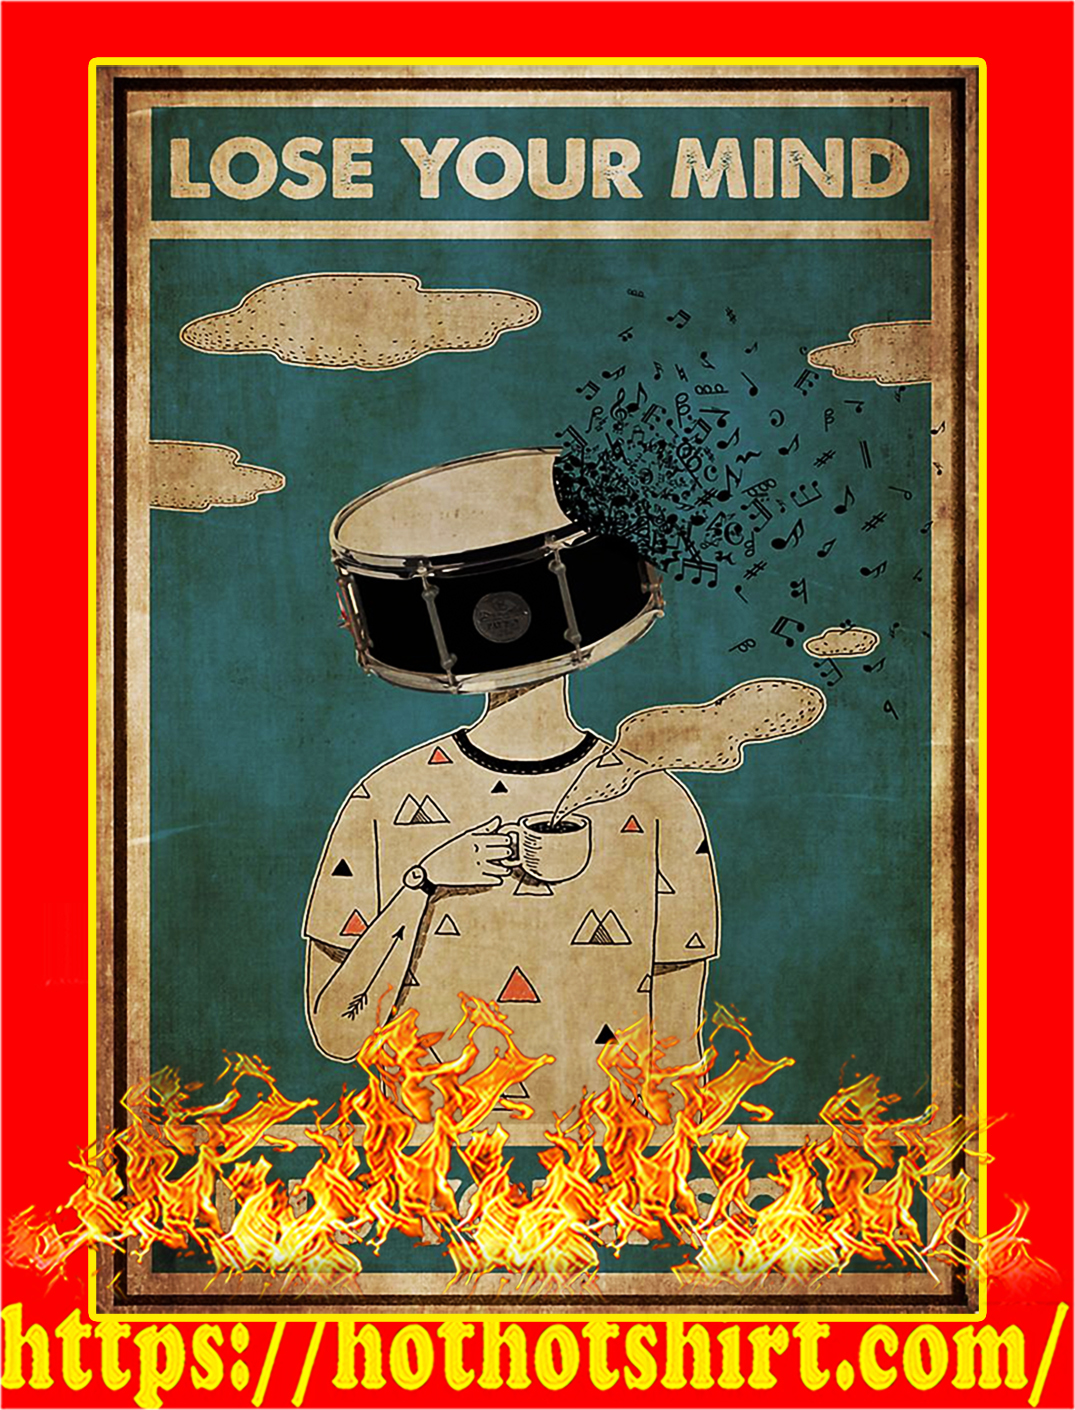 Drum Lose your mind find your soul poster - A1